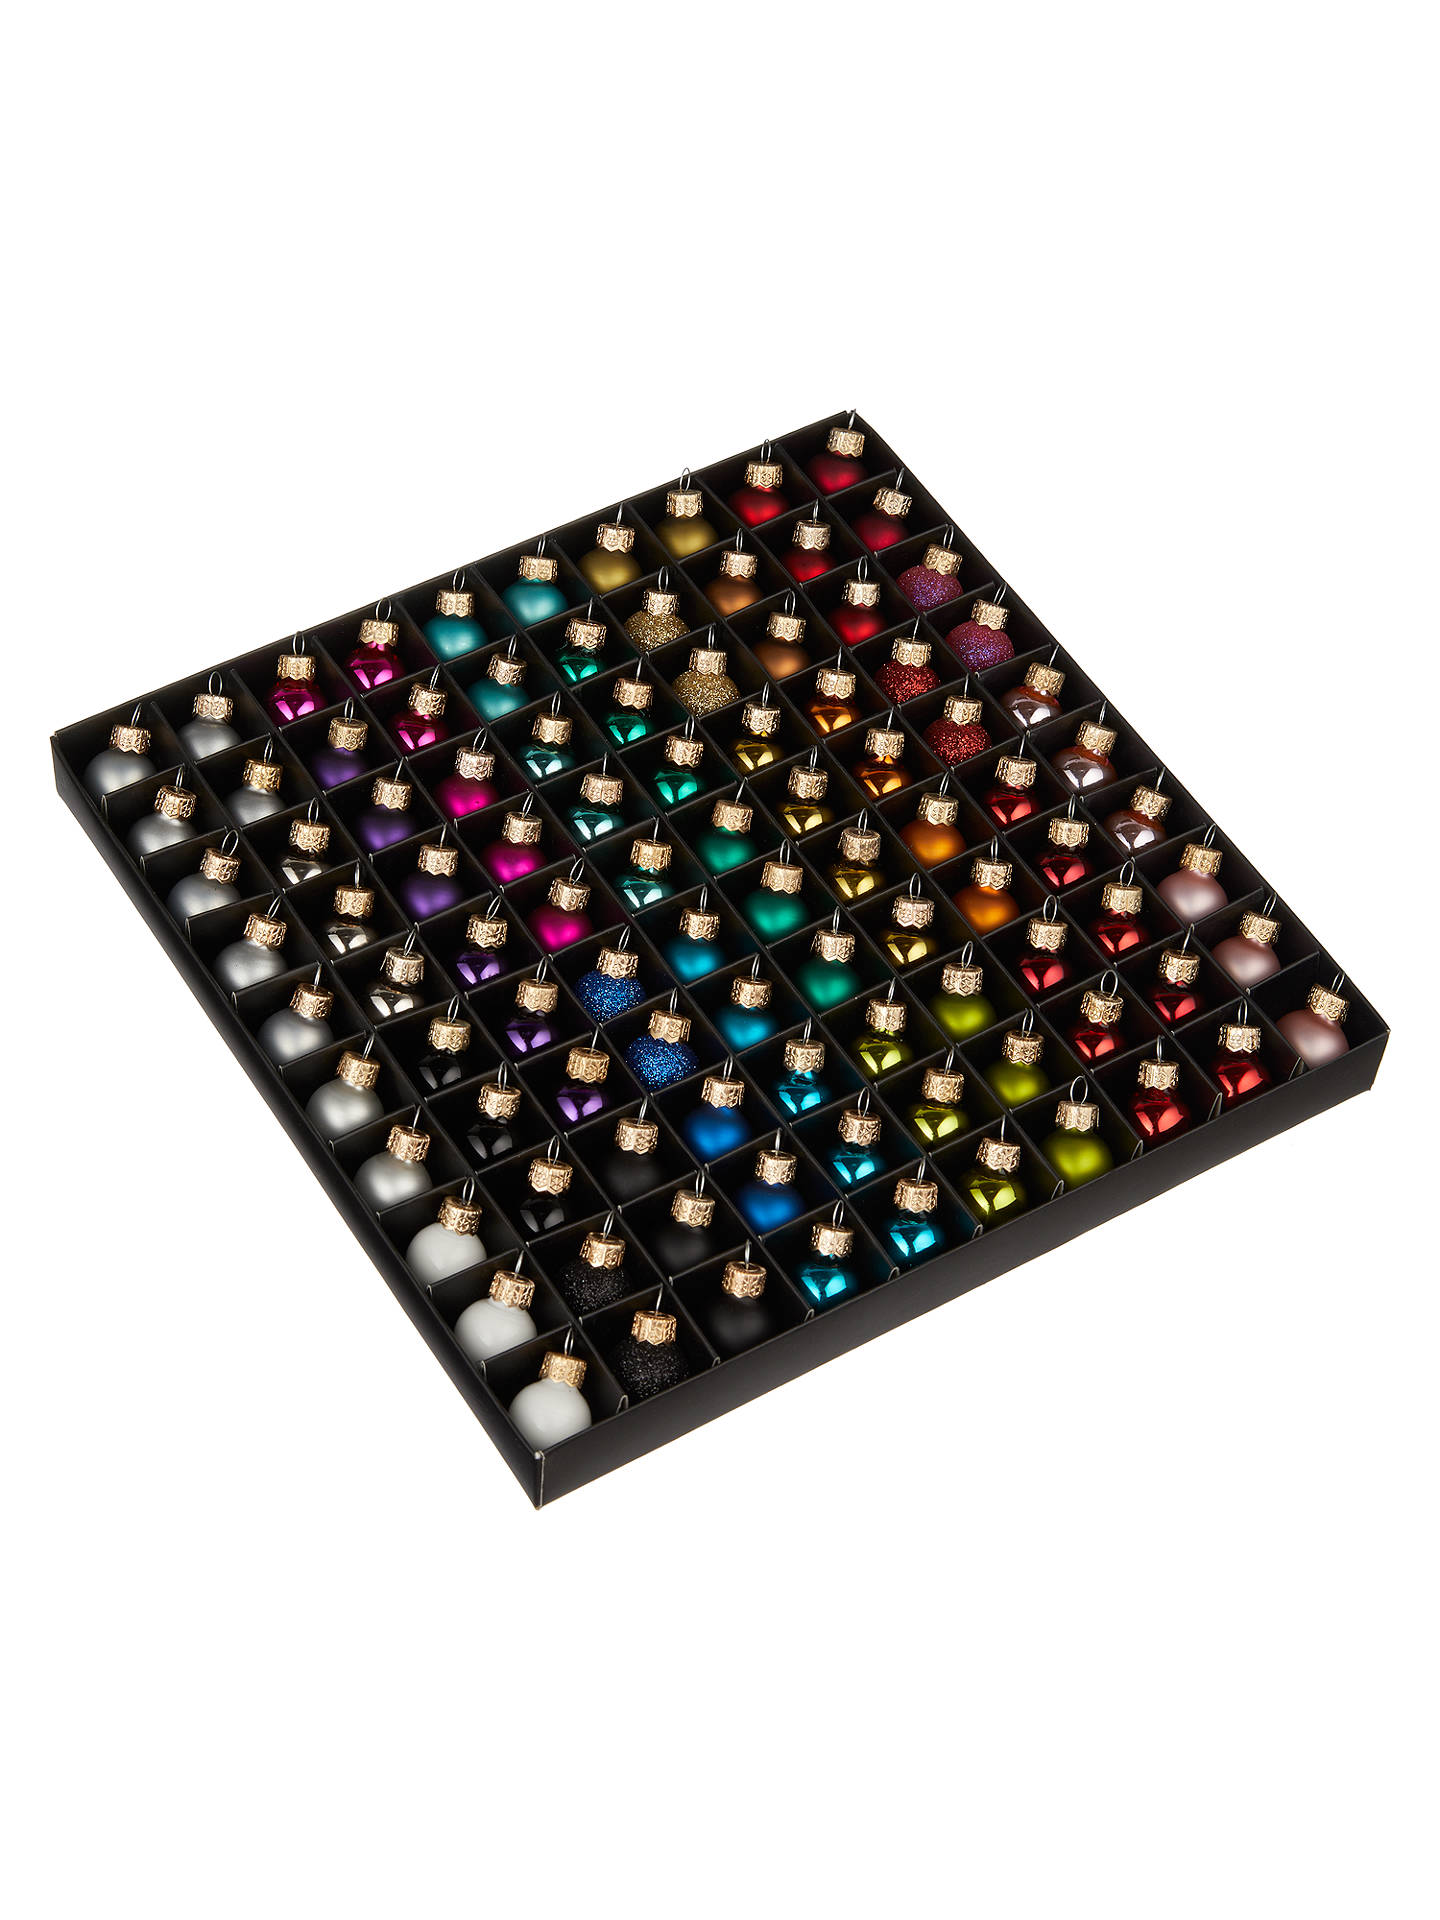 BuyJohn Lewis & Partners Rainbow Mini Glass Baubles, Box of 100, Multi Online at johnlewis.com